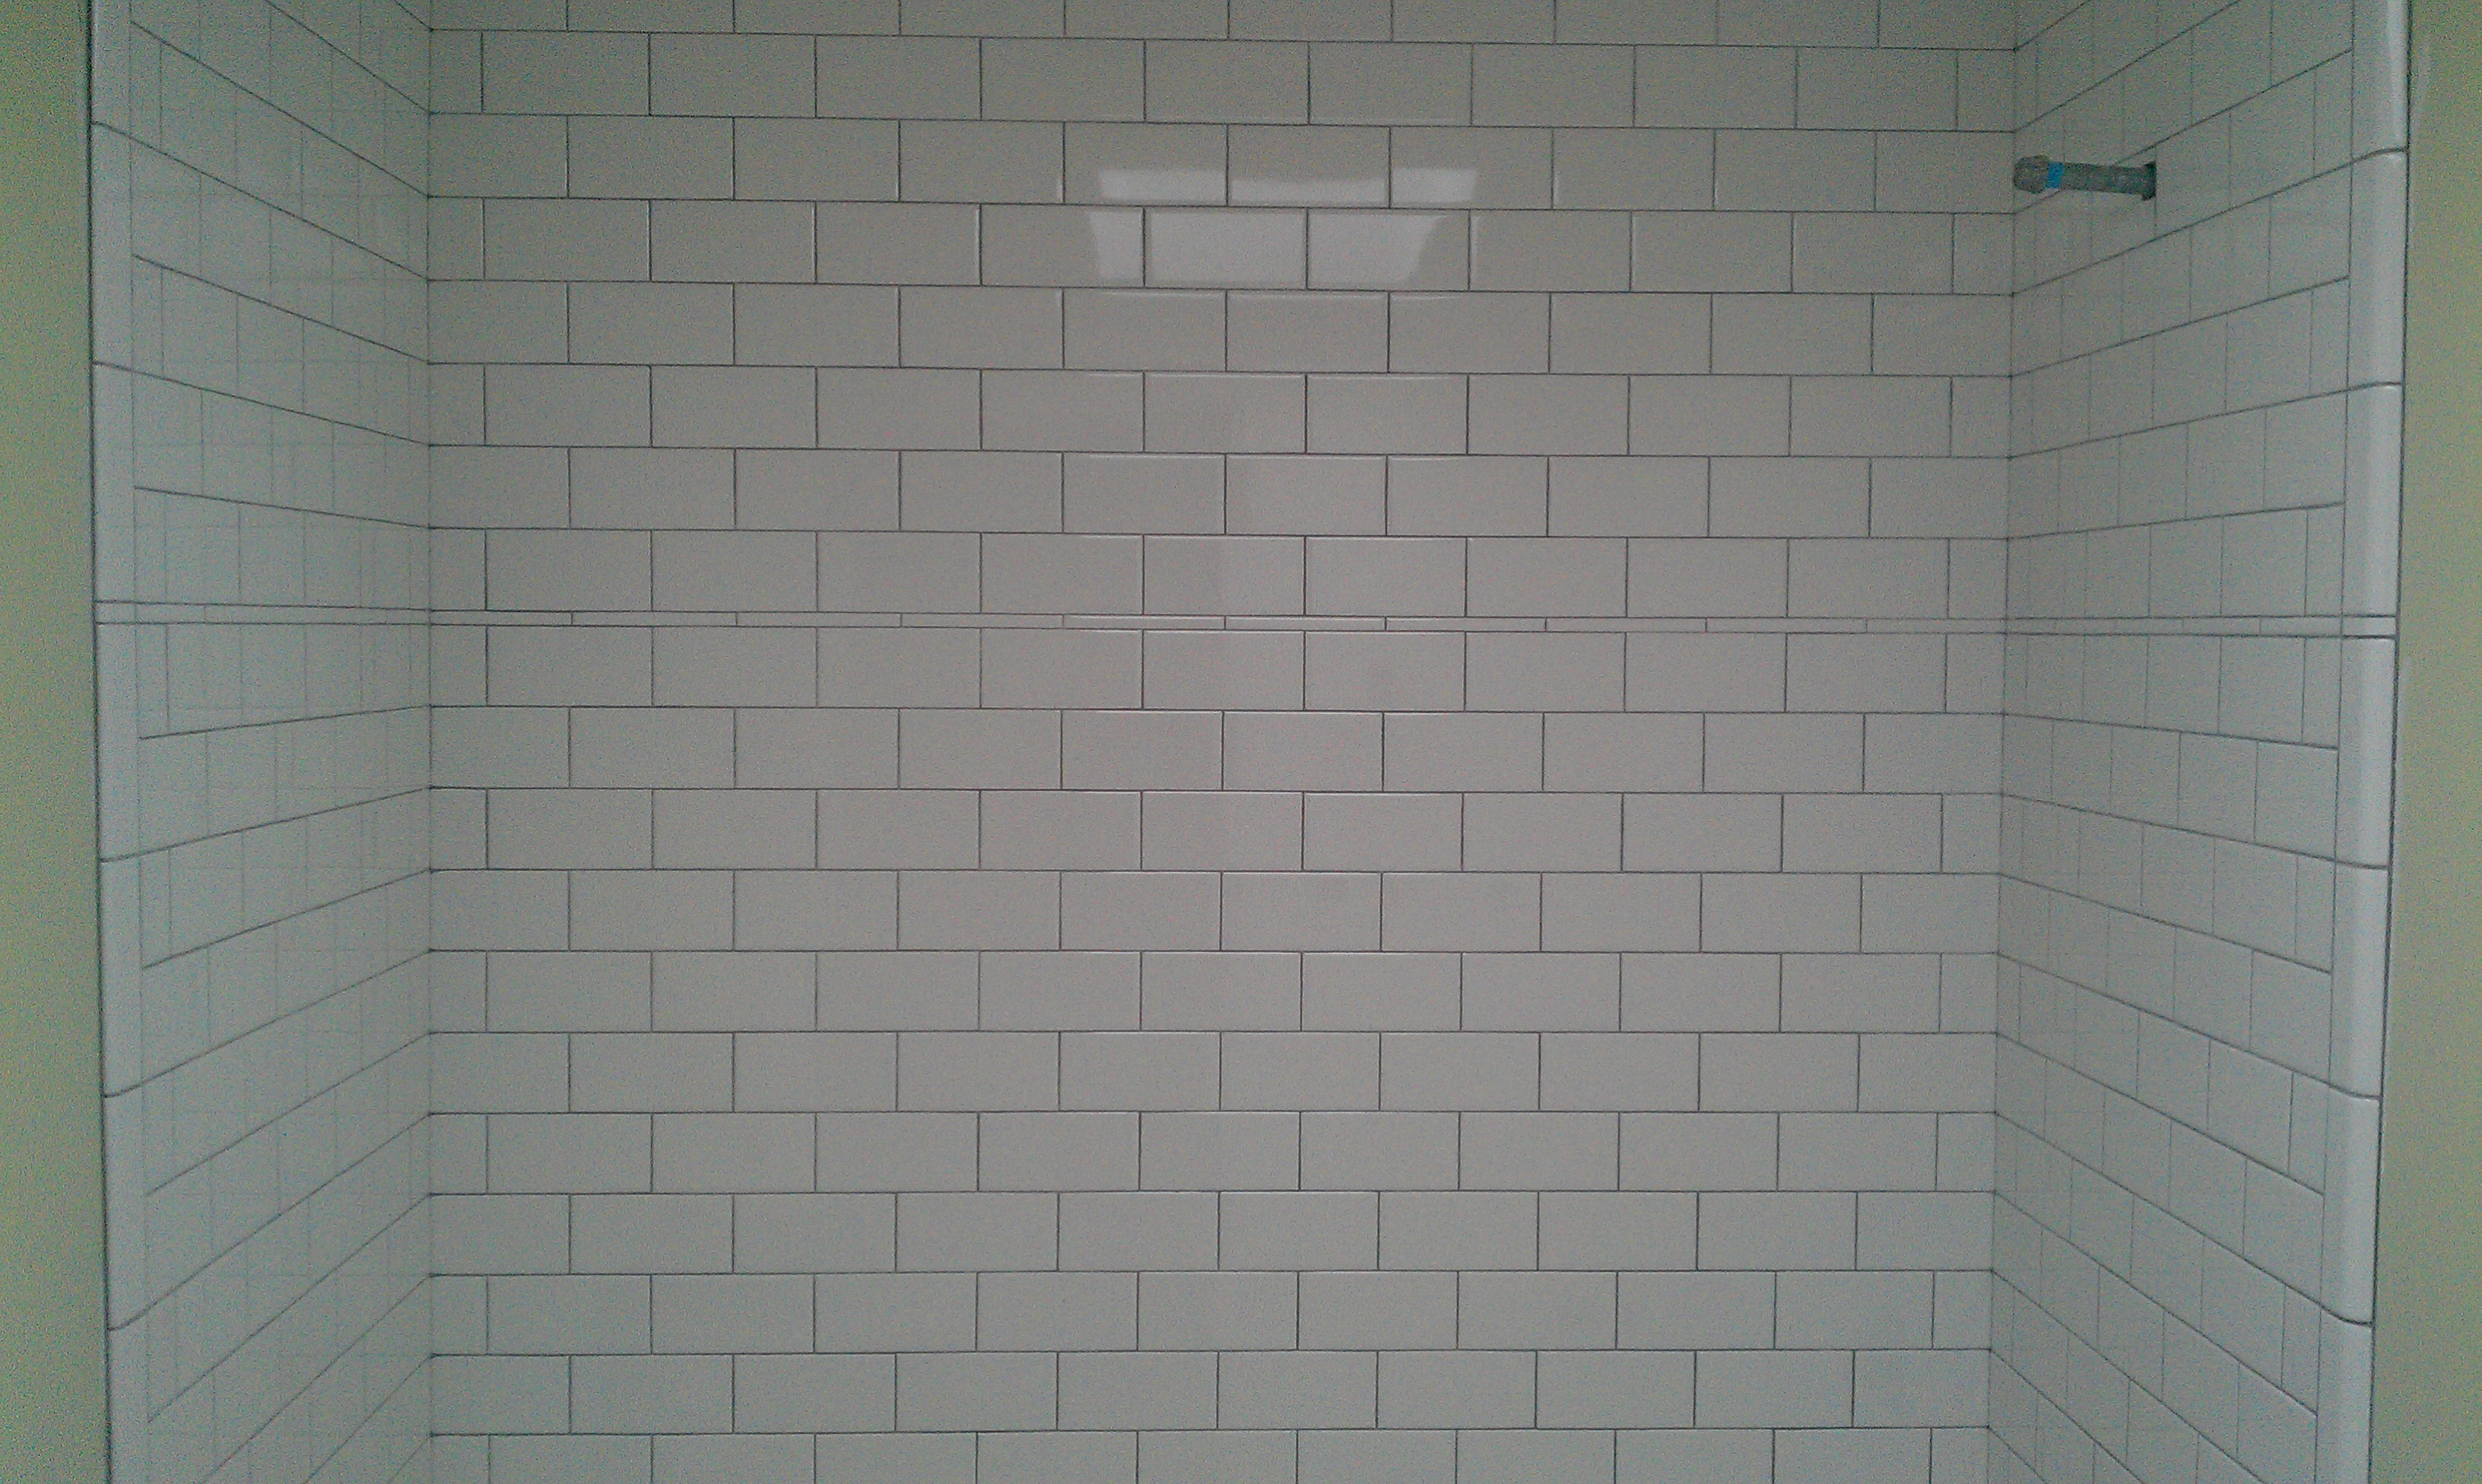 White Subway Tile Grey Grout Bathroom White Subway Field With A